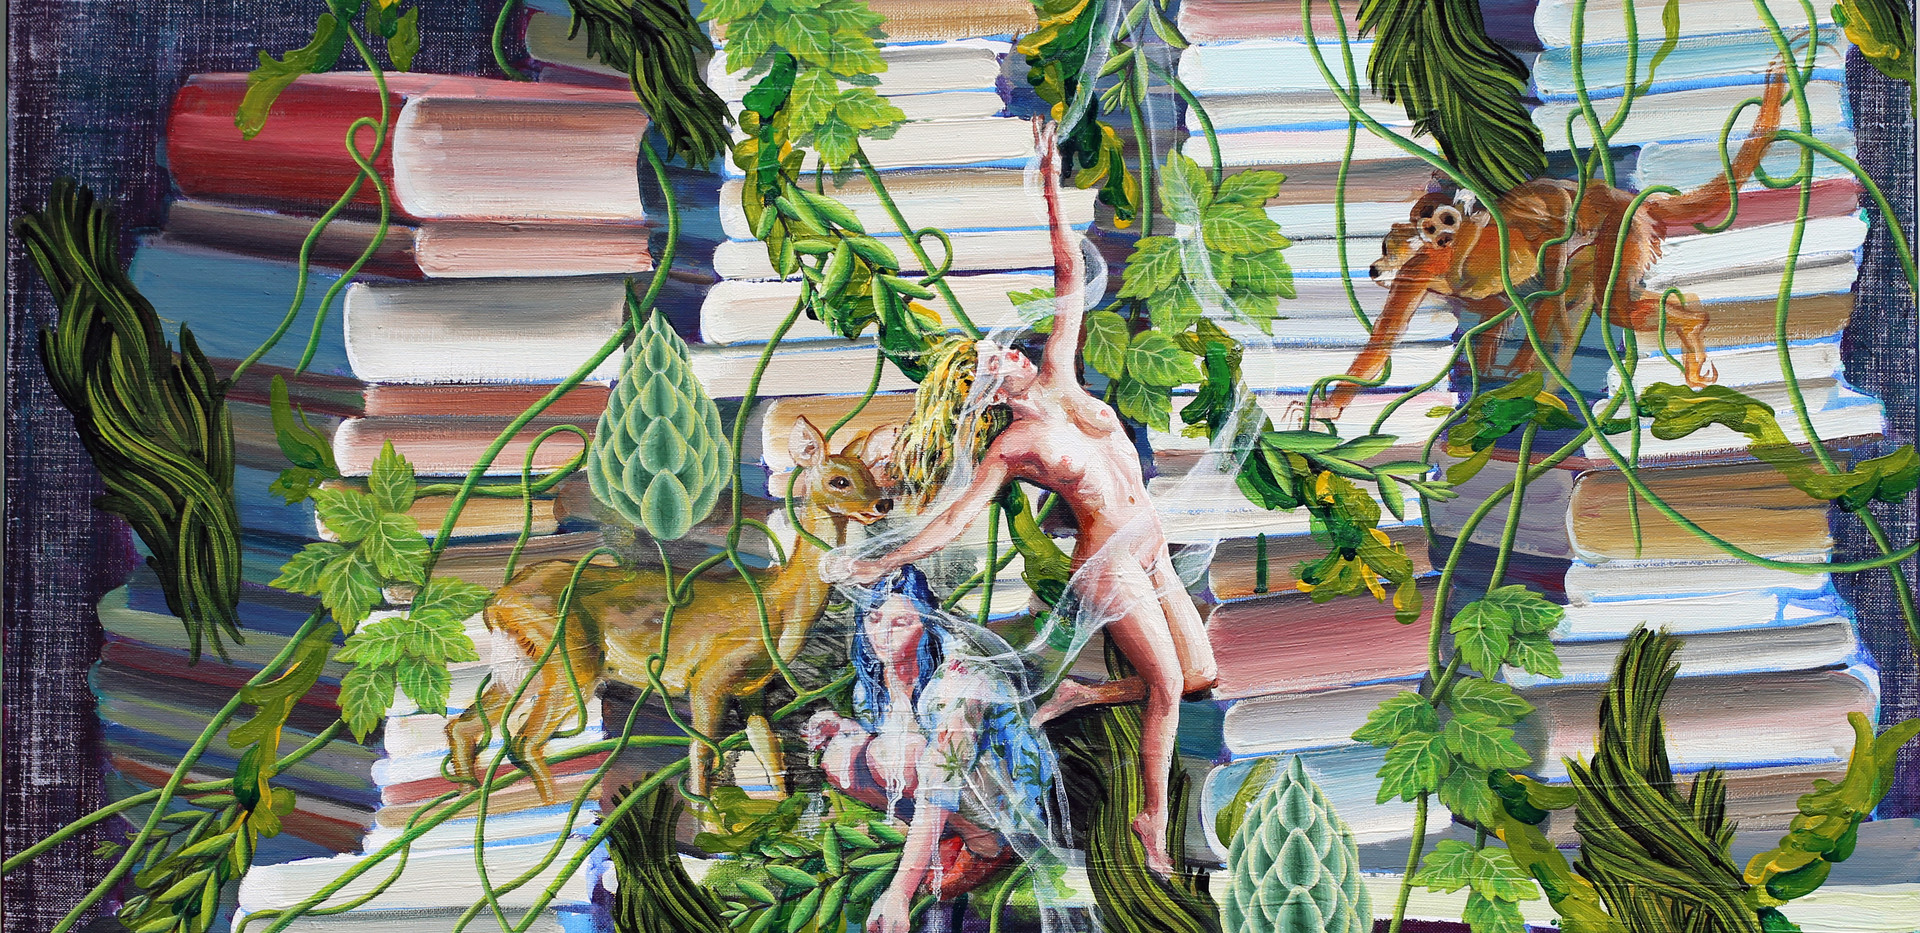 Rhizome book forest  61x91cm oil on canvas 2017-1